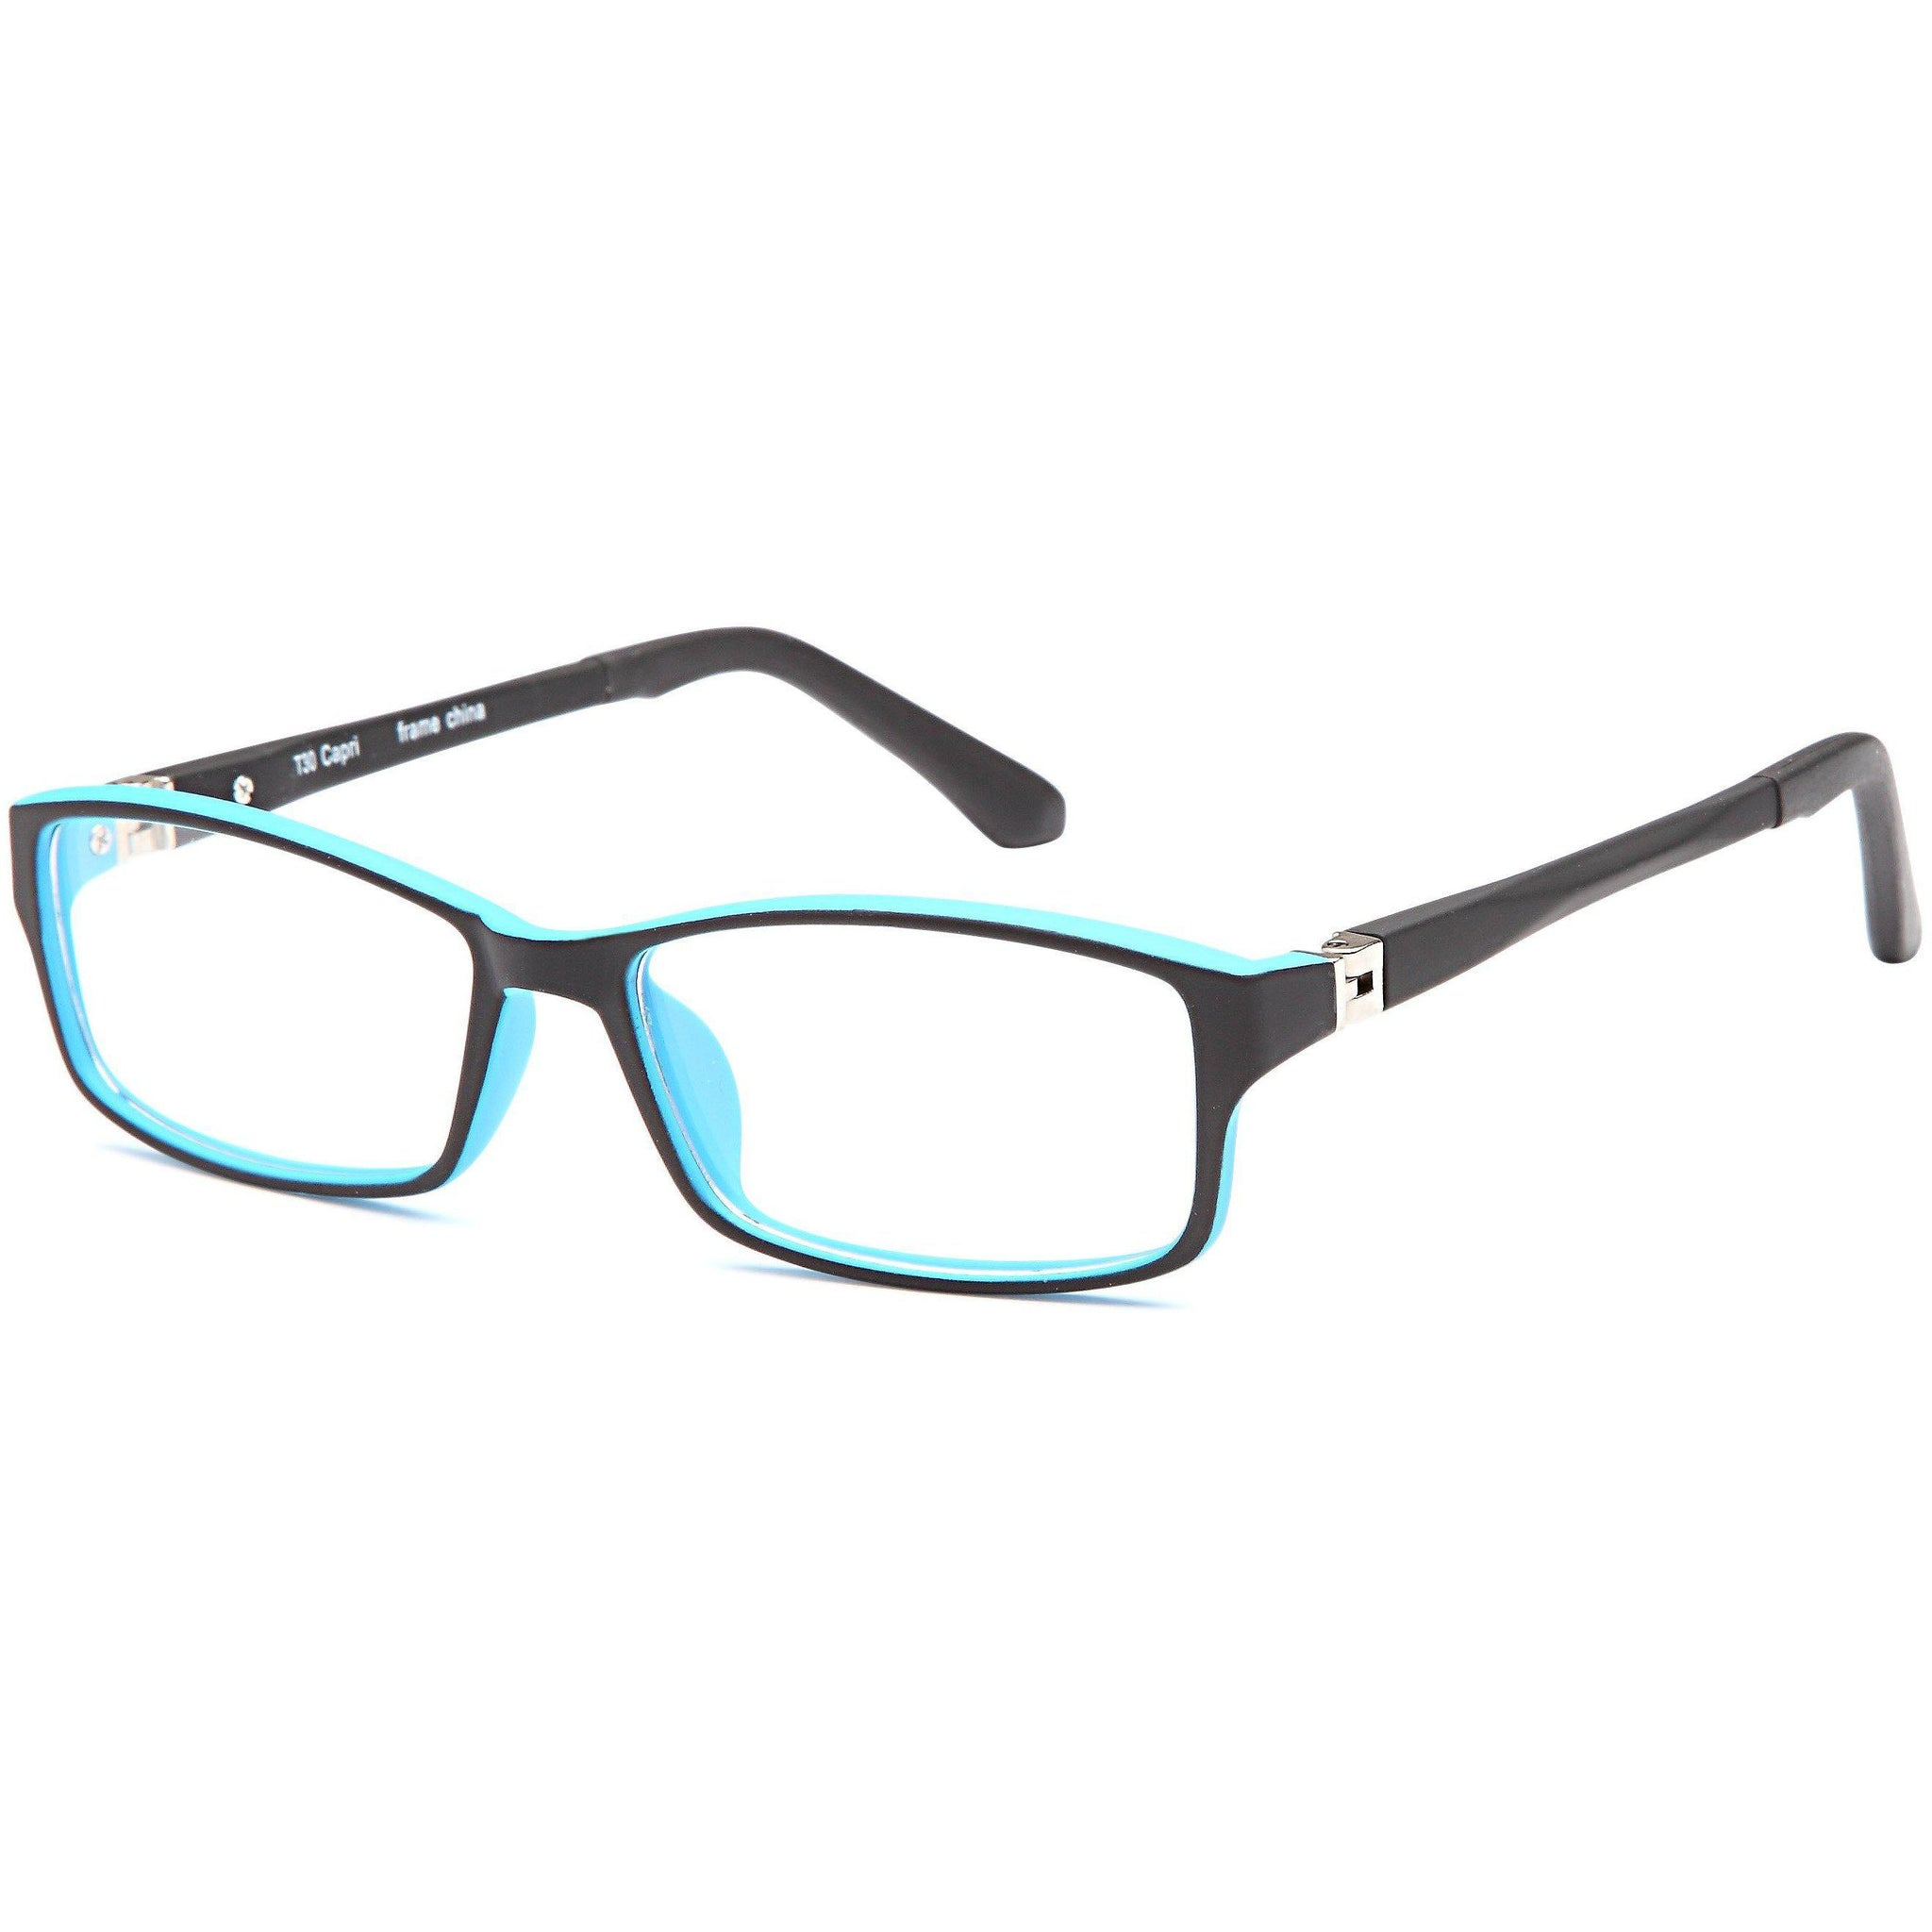 OnTrend Prescription Glasses T 30 Eyeglasses Frames